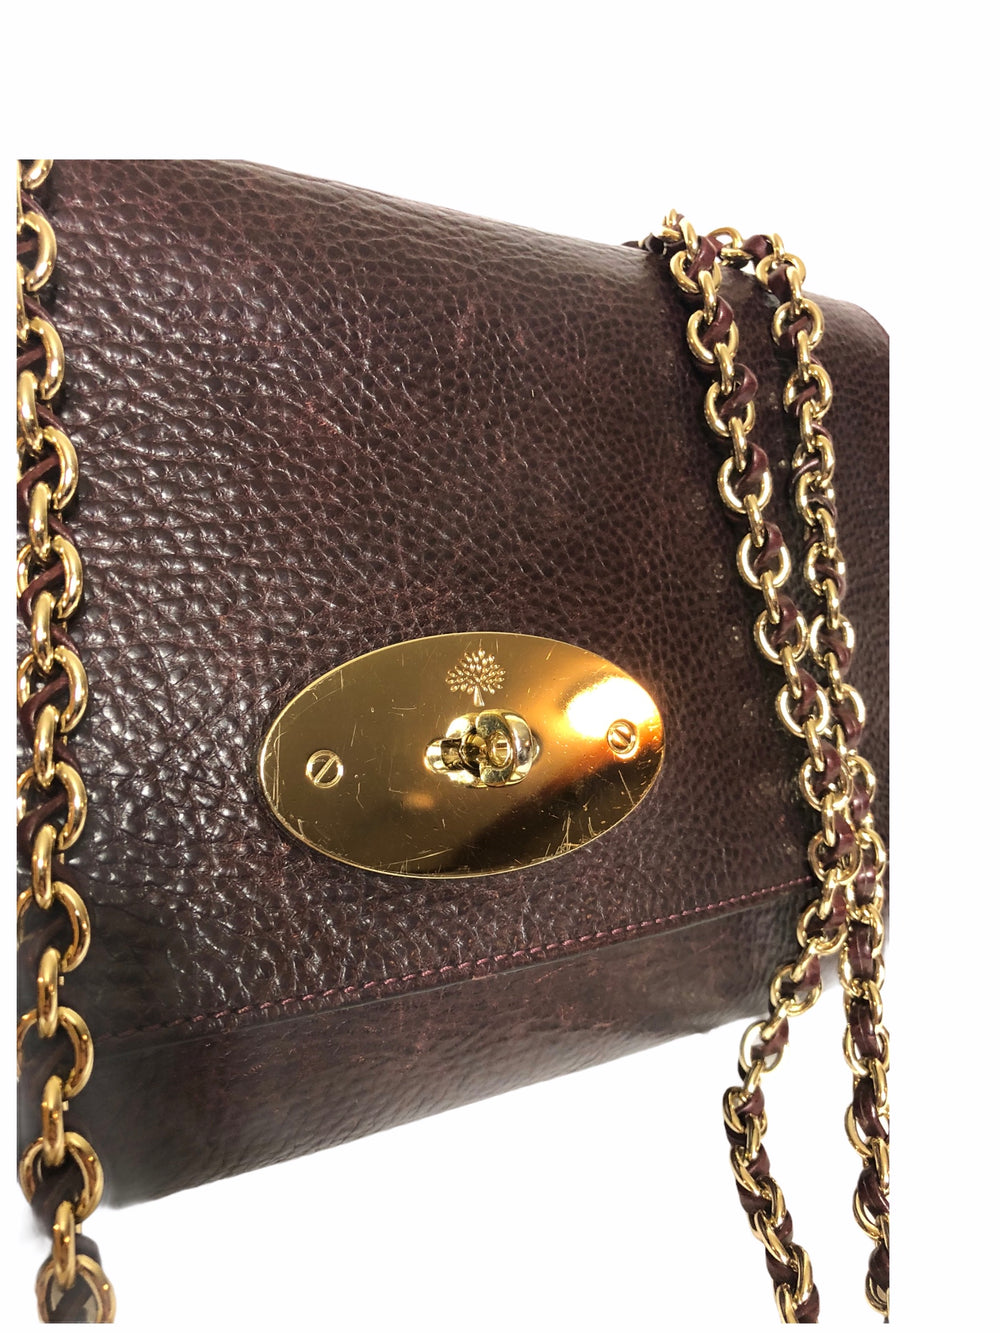 Mulberry Large Burgundy Leather